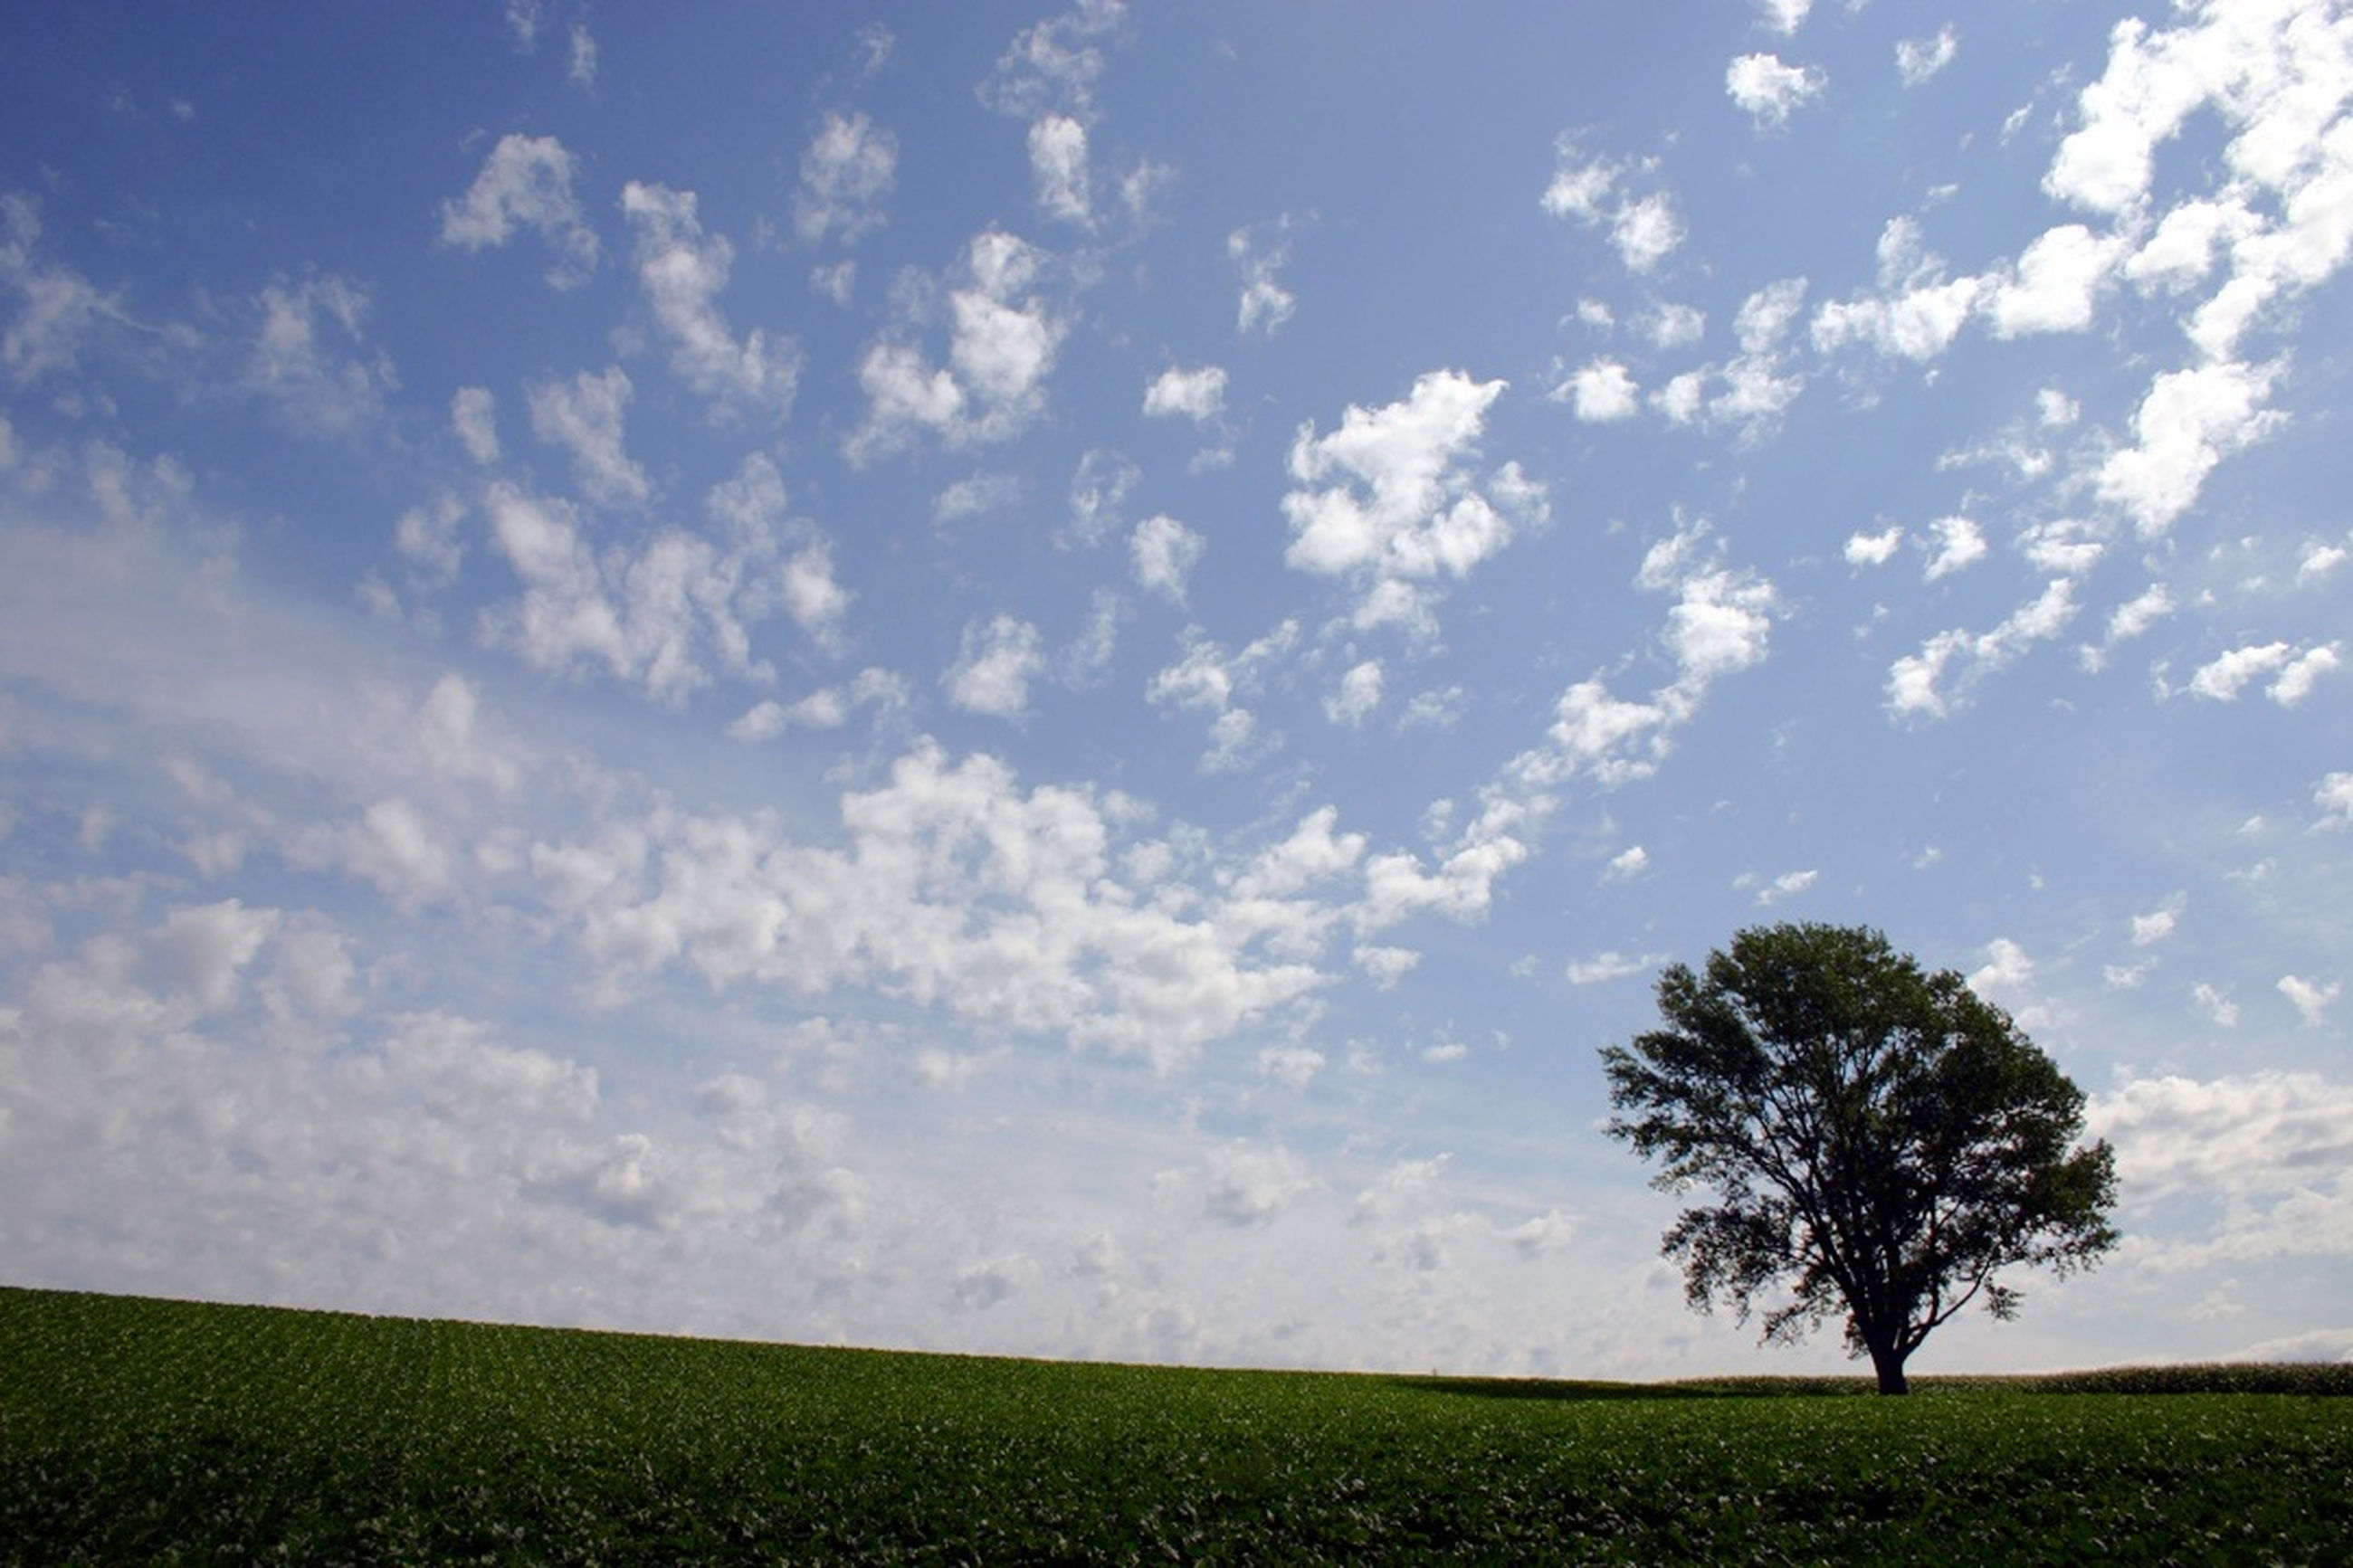 field, landscape, tranquil scene, tranquility, sky, beauty in nature, scenics, tree, nature, growth, agriculture, rural scene, cloud - sky, grass, cloud, farm, idyllic, horizon over land, green color, day